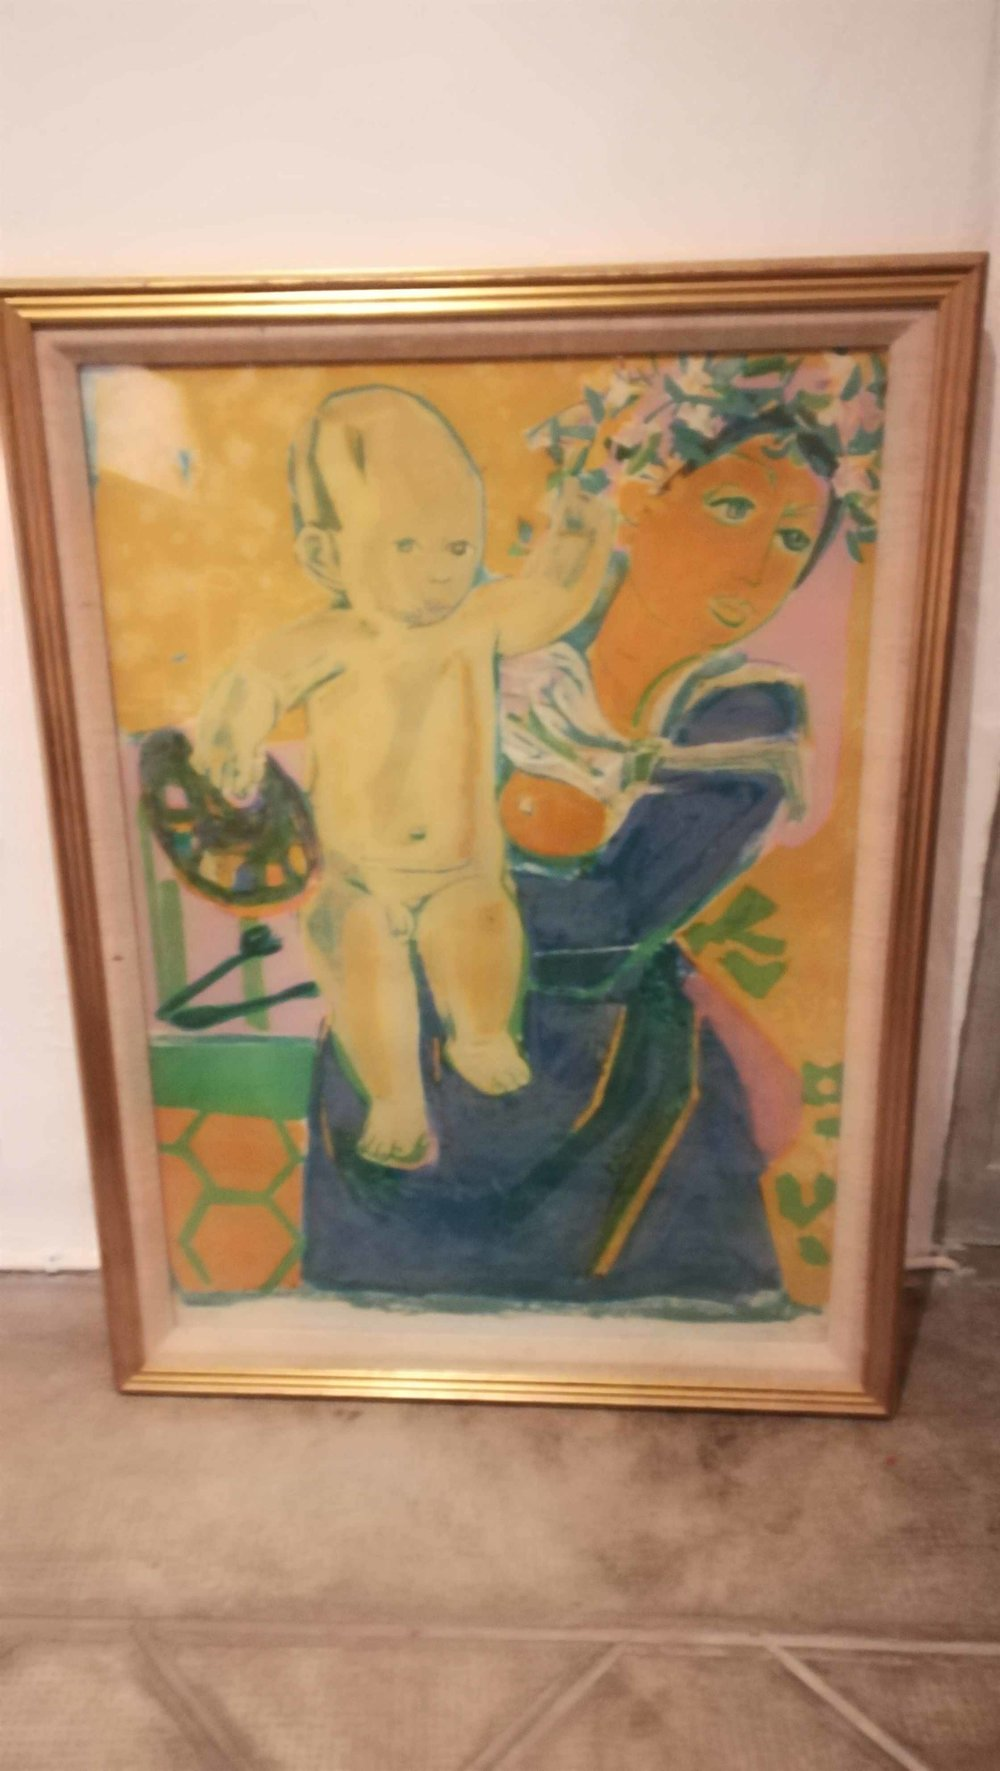 item 5: Roger Bezombes Woman and Child lithograph, pencil signed